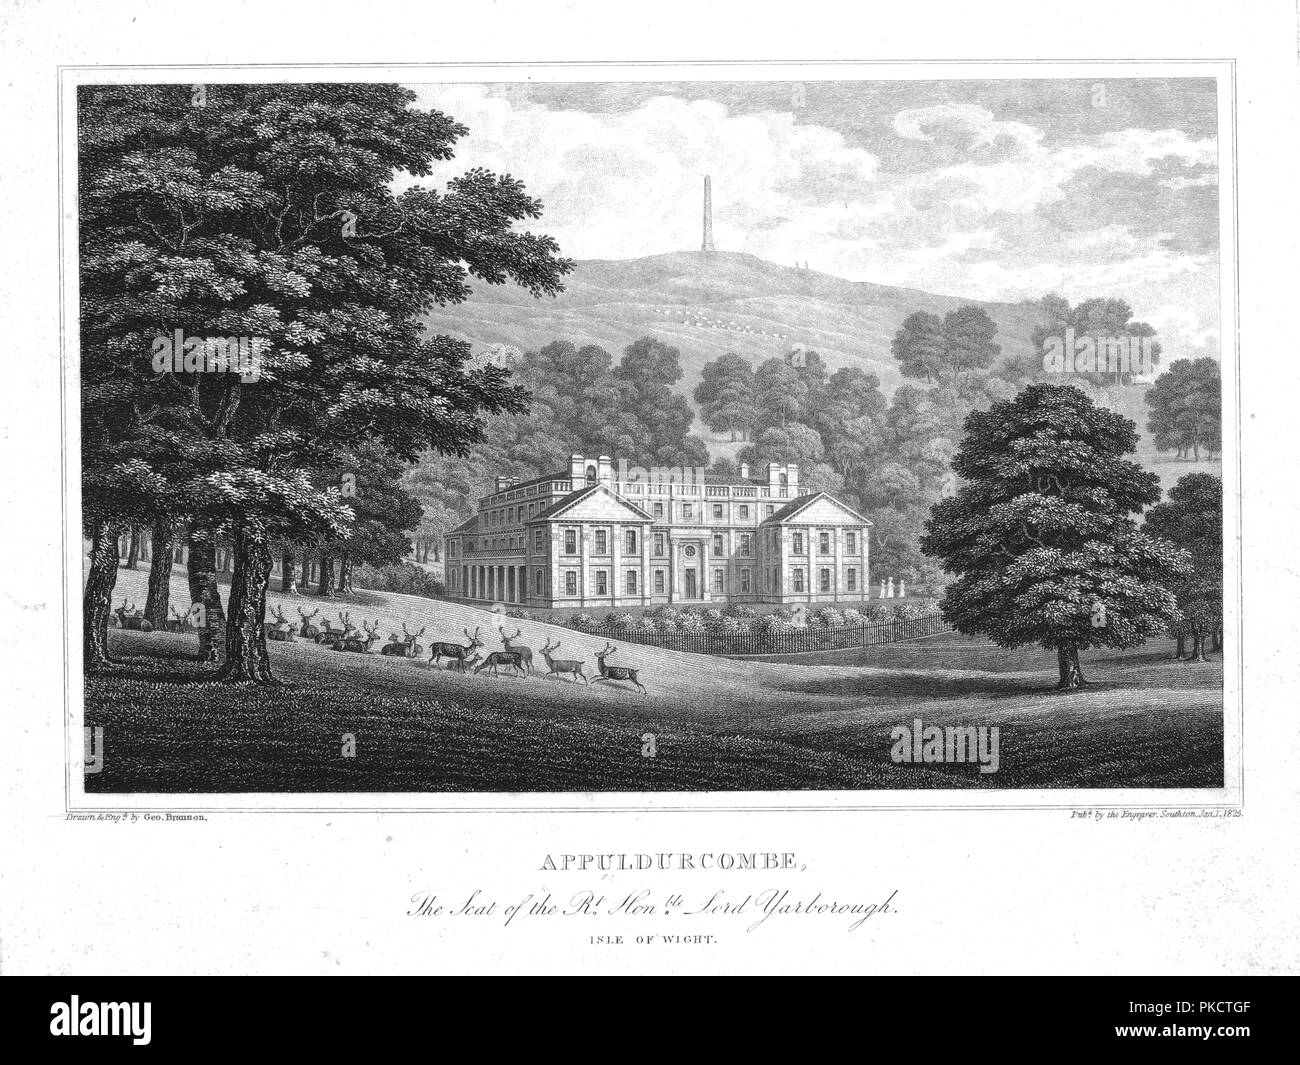 'Appuldurcombe, The Seat of the Rt. Hon.ble Lord Yarborough. Isle of Wight.', c1825. View of Appuldurcombe House, an 18th century Baroque house designed by John James and built on the site of an earlier Tudor house for Sir Robert Worsley, 4th Baronet. In the 1770s the house was extended by Sir Richard Worsley, 7th Baronet, and Capability Brown was commissioned to lay out the gardens. - Stock Image